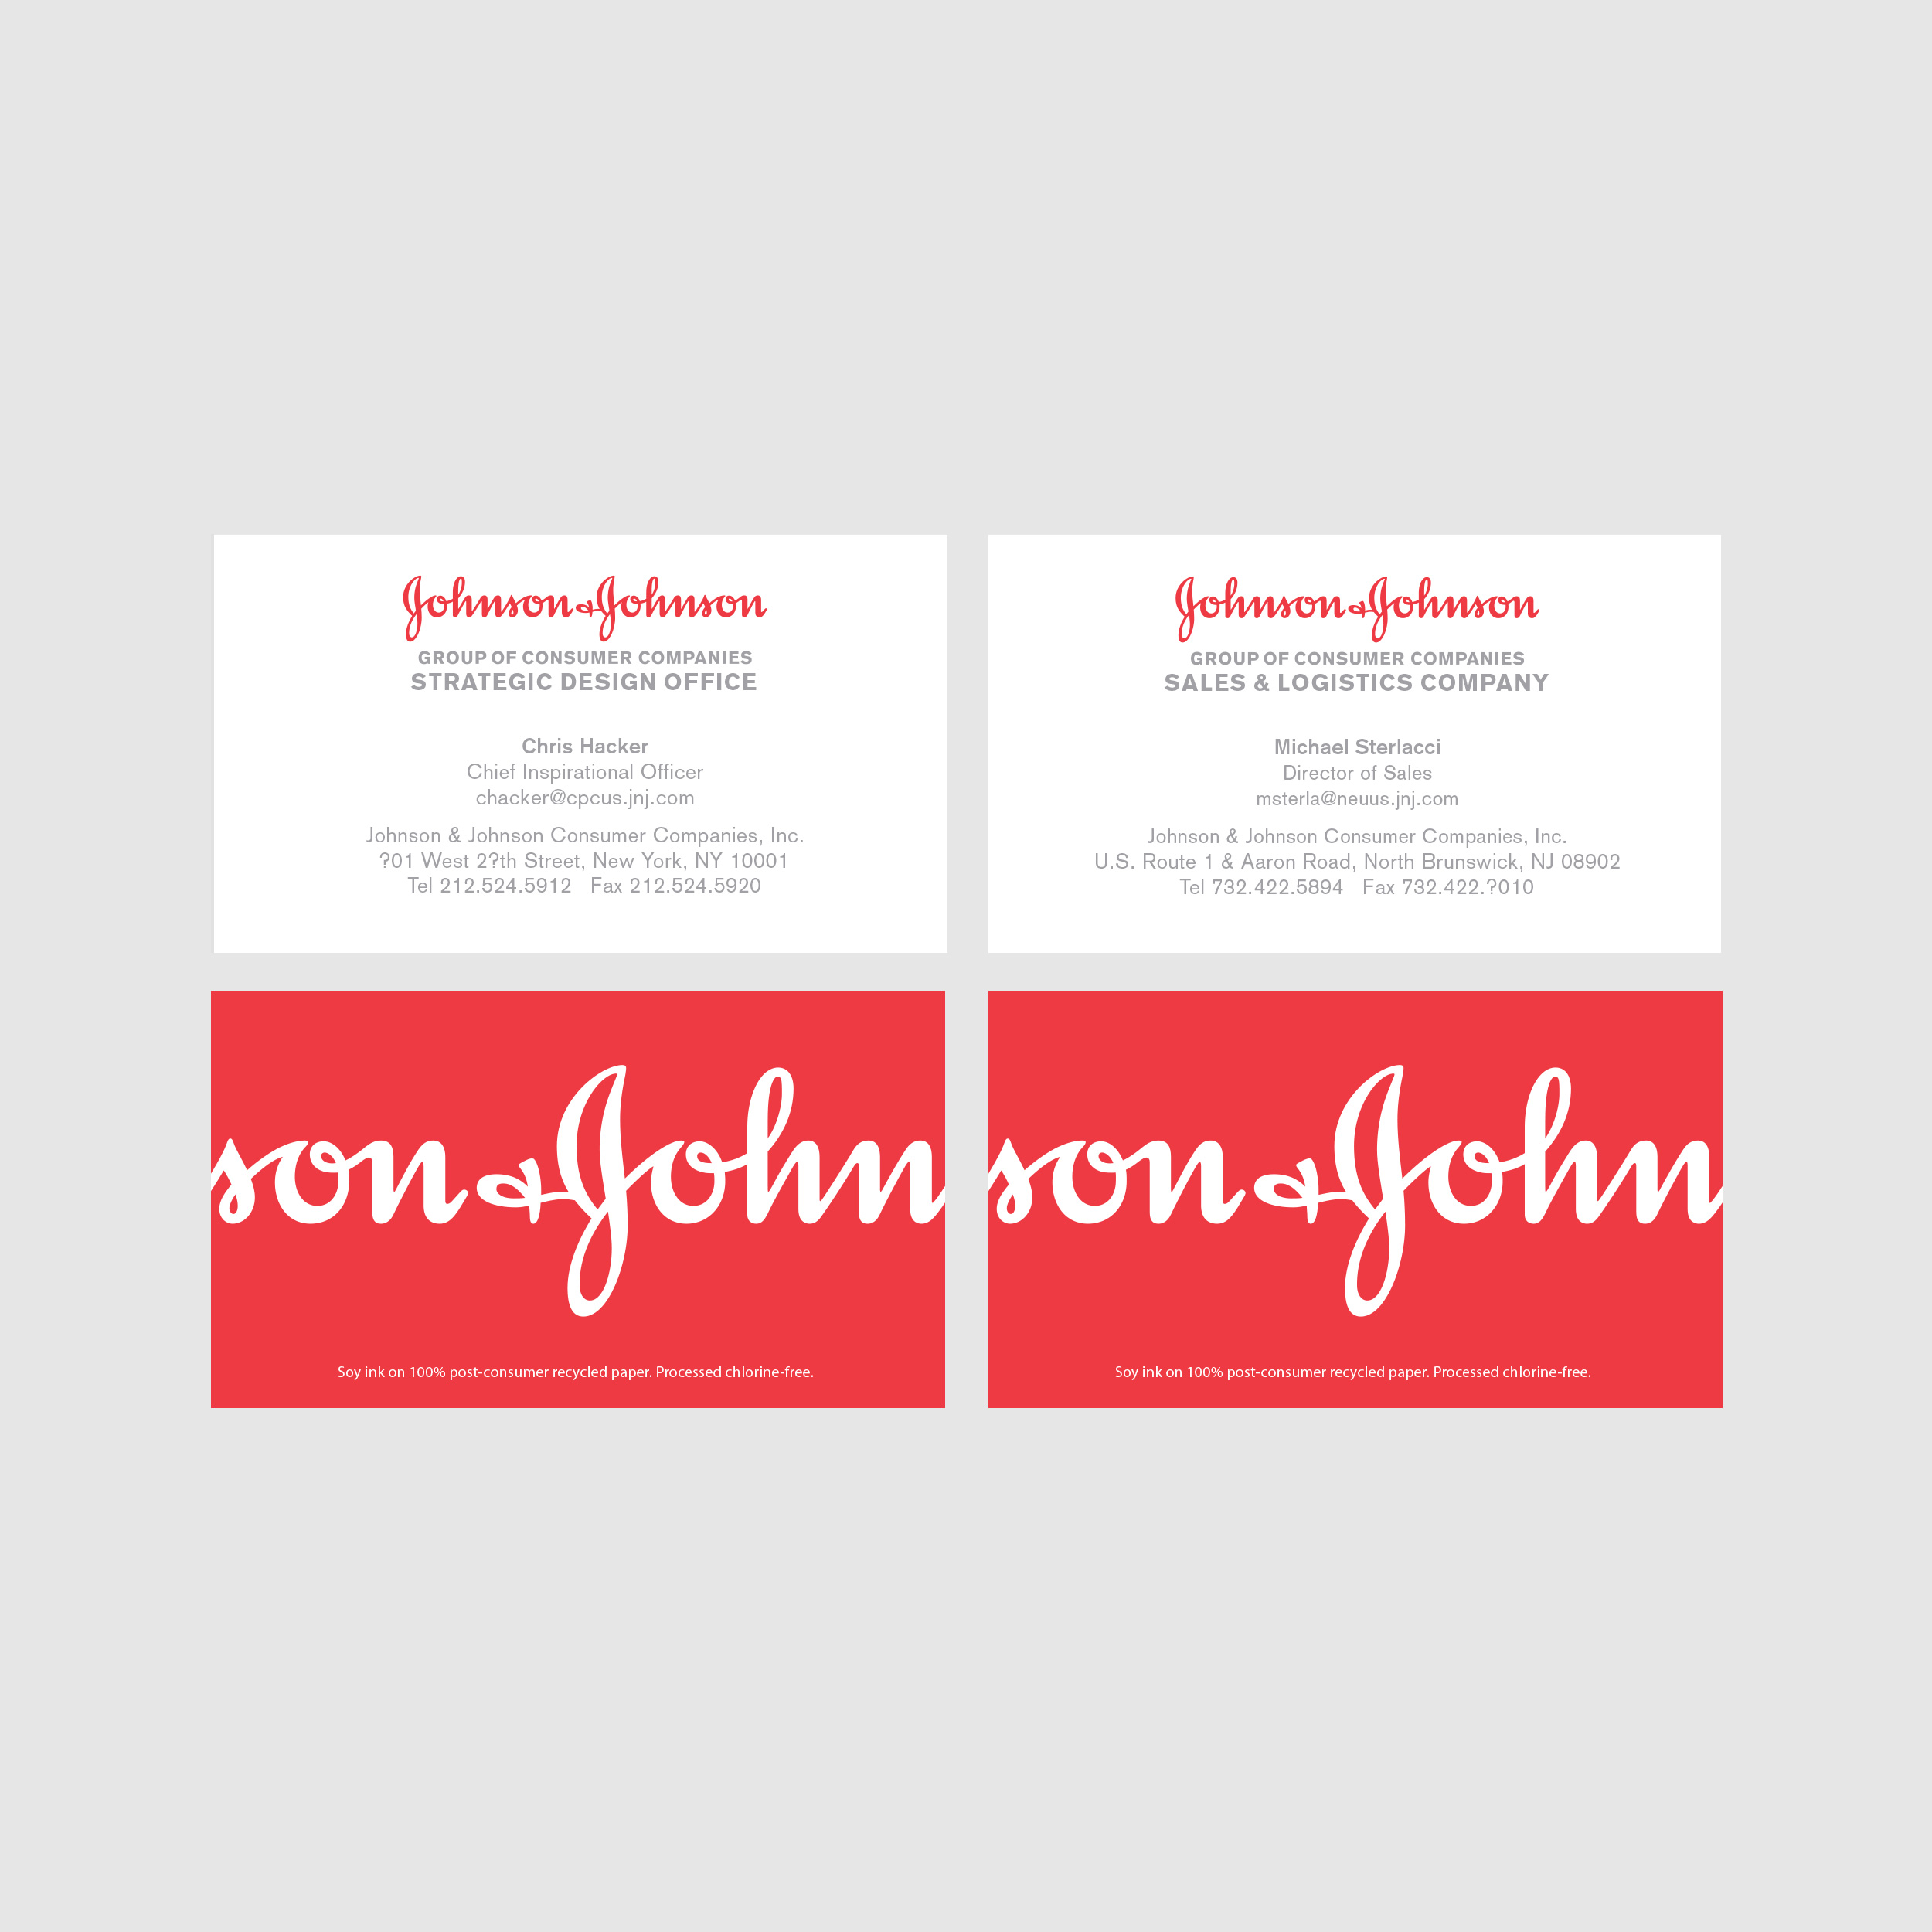 distinc_johnson_johnson_business_cards.jpg